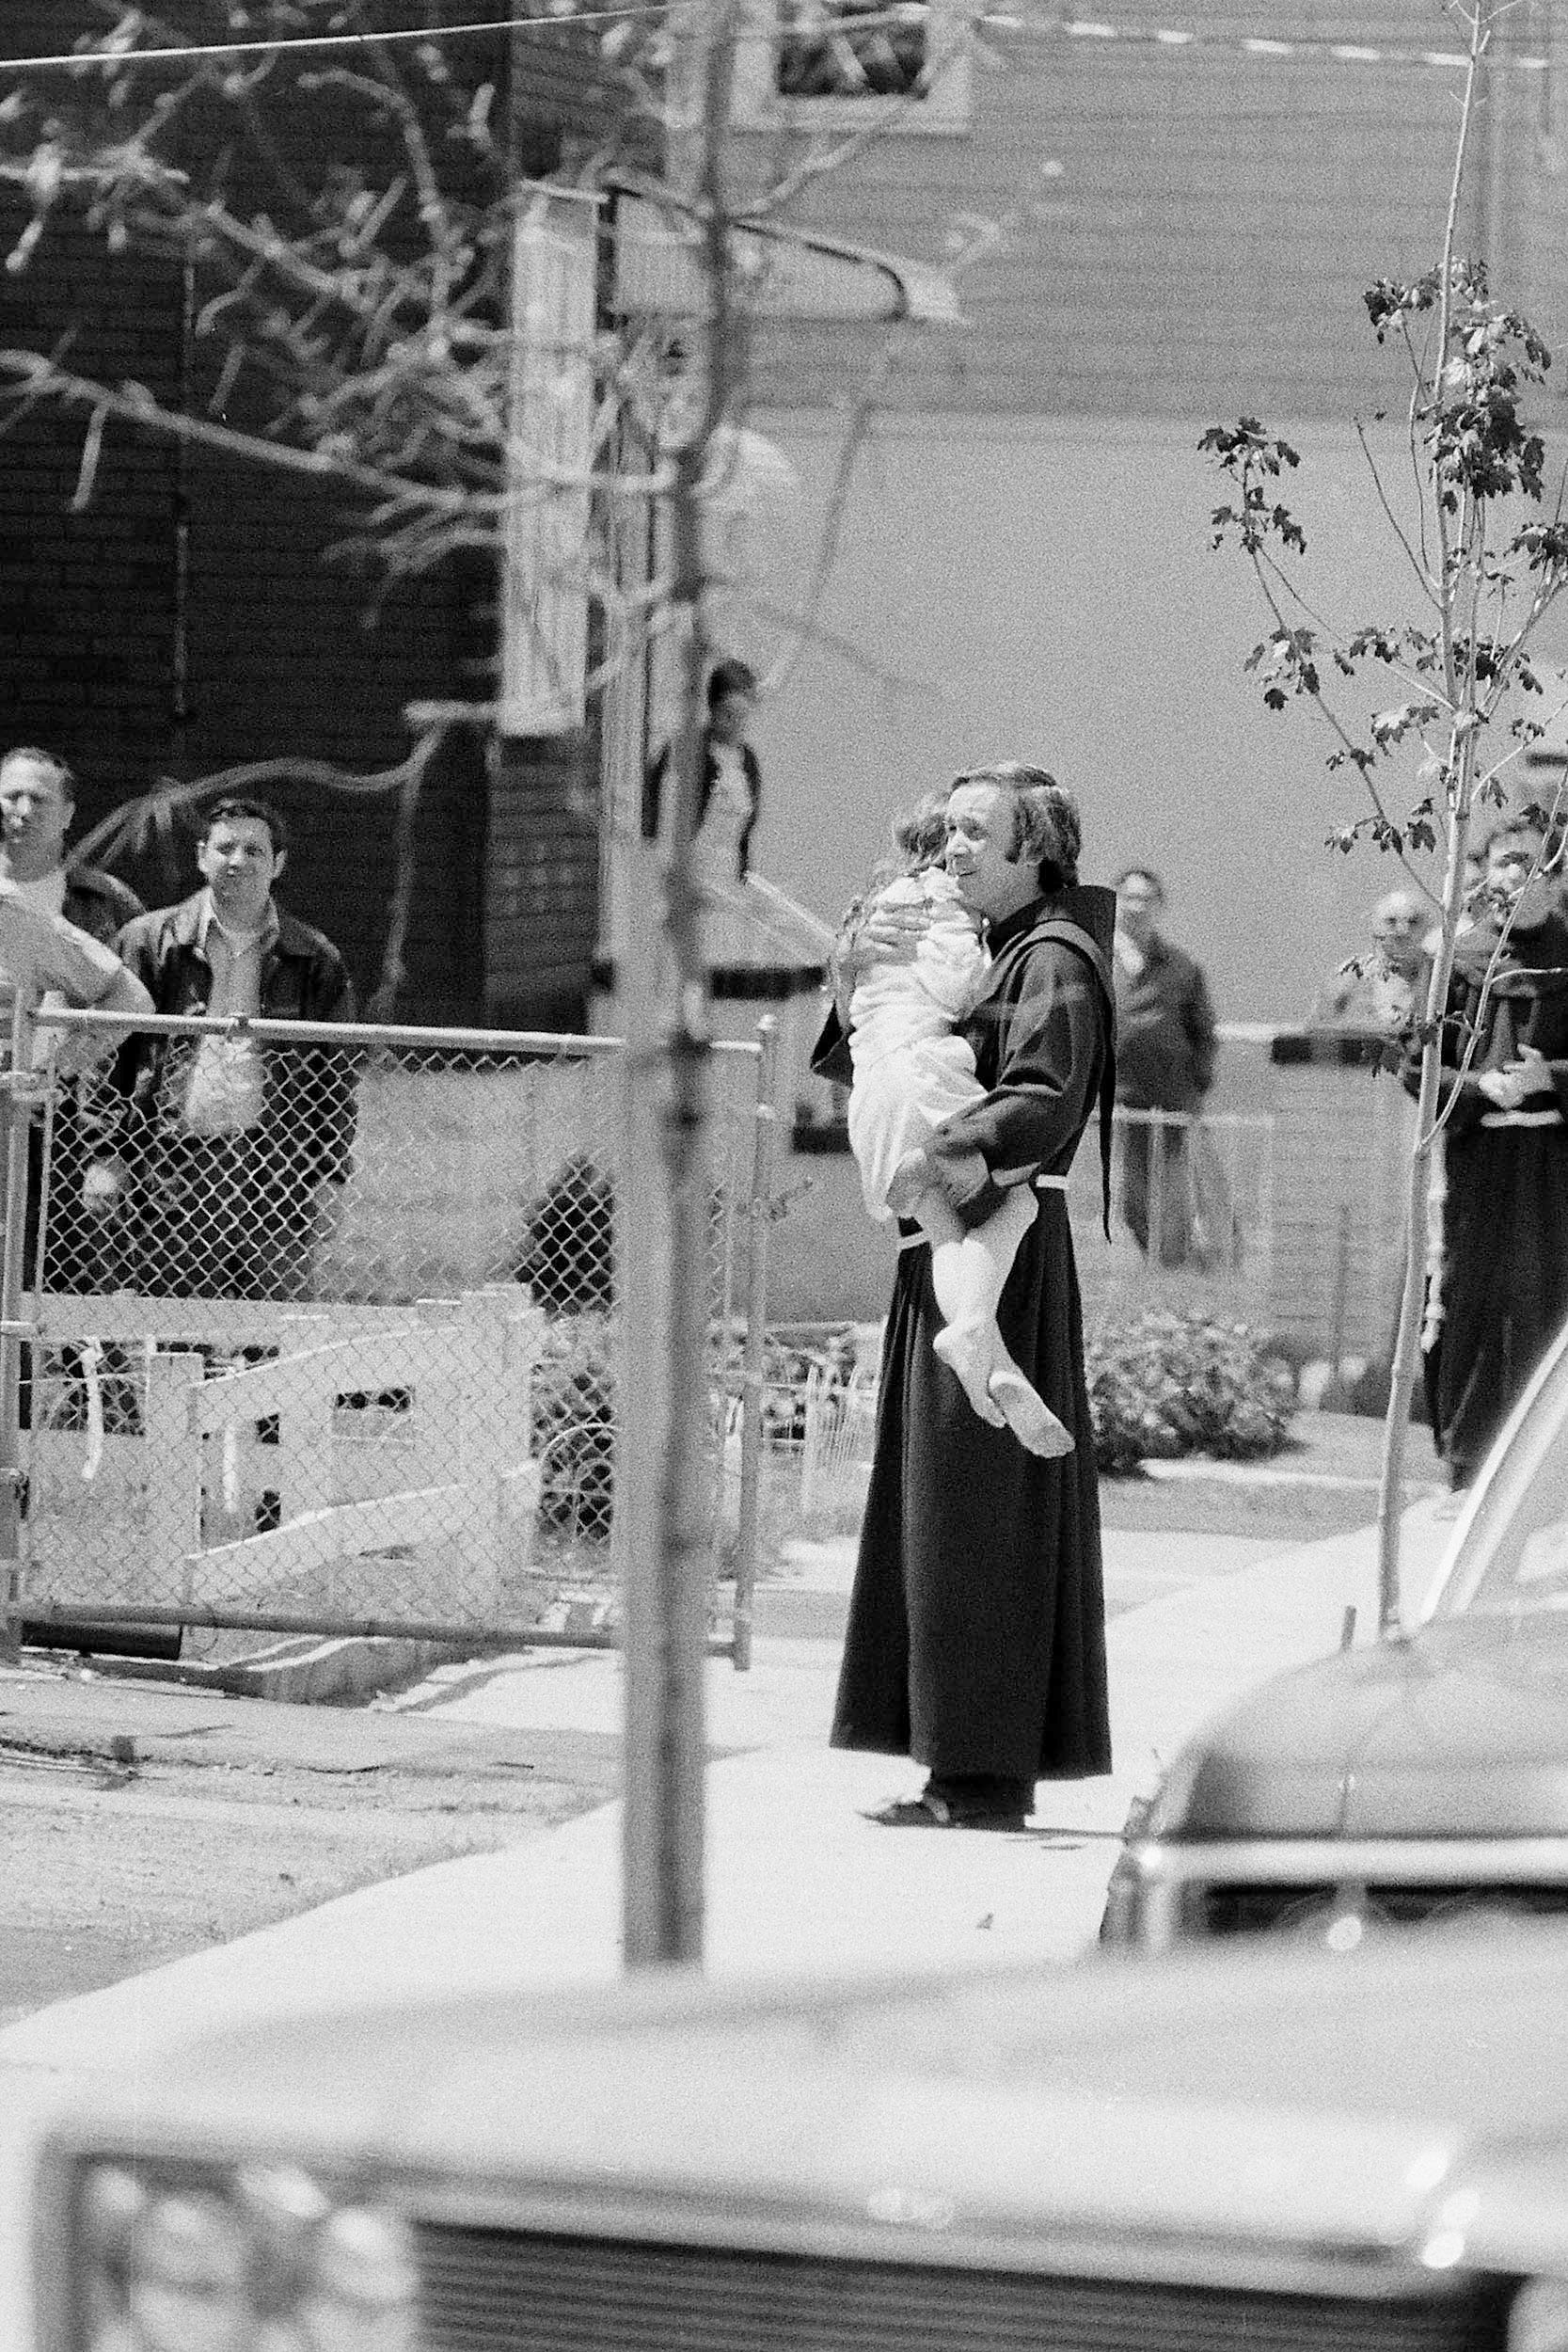 Father Mychal Judge comforts one of the Hyams children during a police standoff with James G. Hyams who was holding his wife and their three children hostage in his wife's home with a shotgun and two handguns in Carlstadt, N.J., on May 19, 1974. During the all-day seige, Hyams ahd fired three shots and police fired one. No one was injured.